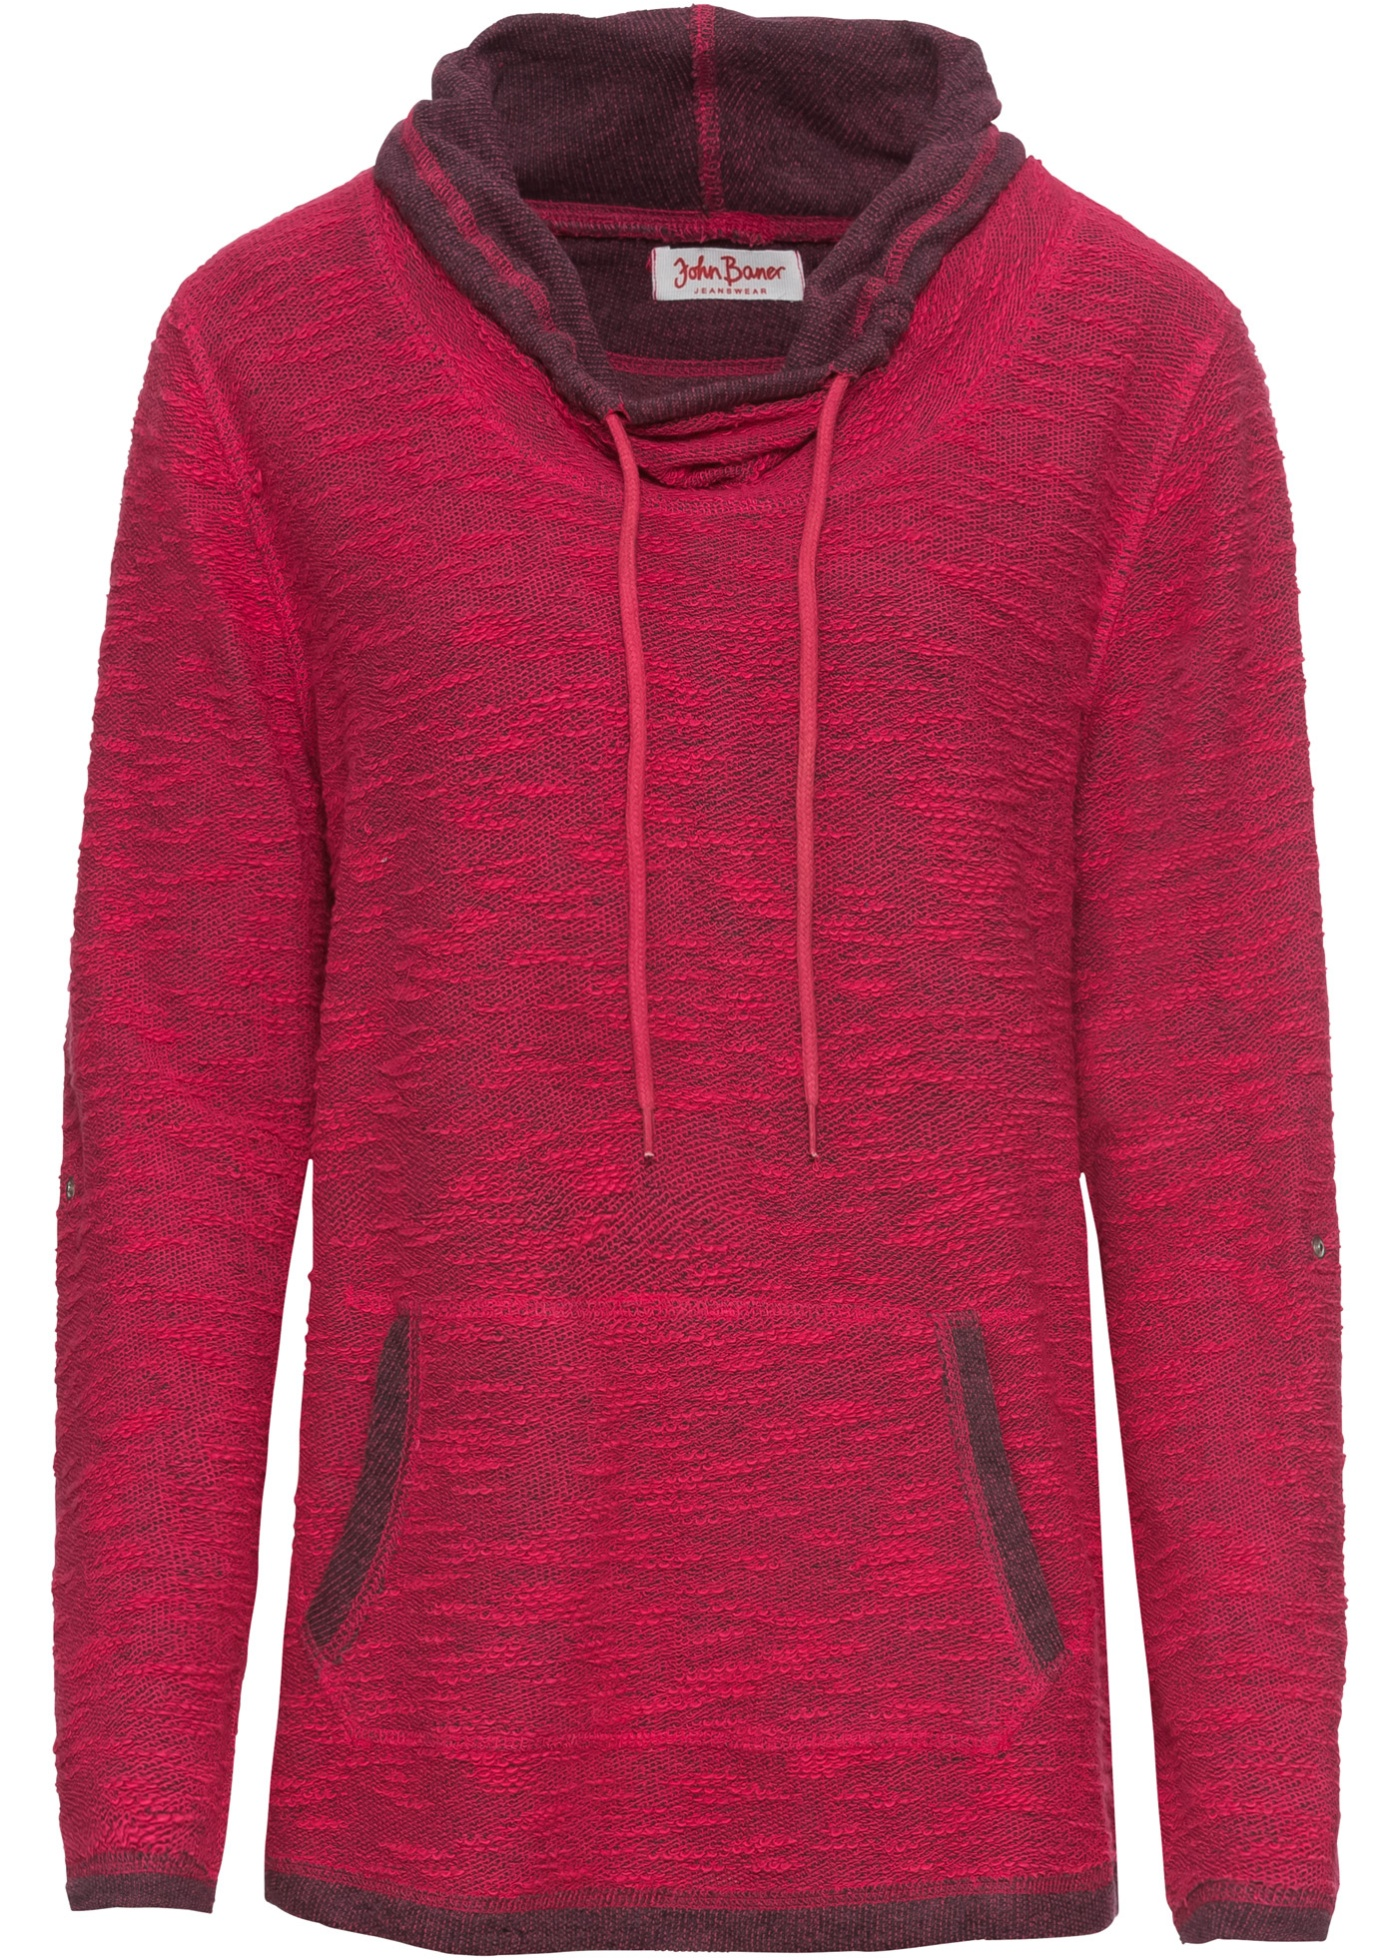 Sweat-shirt ? col ample, manches longues